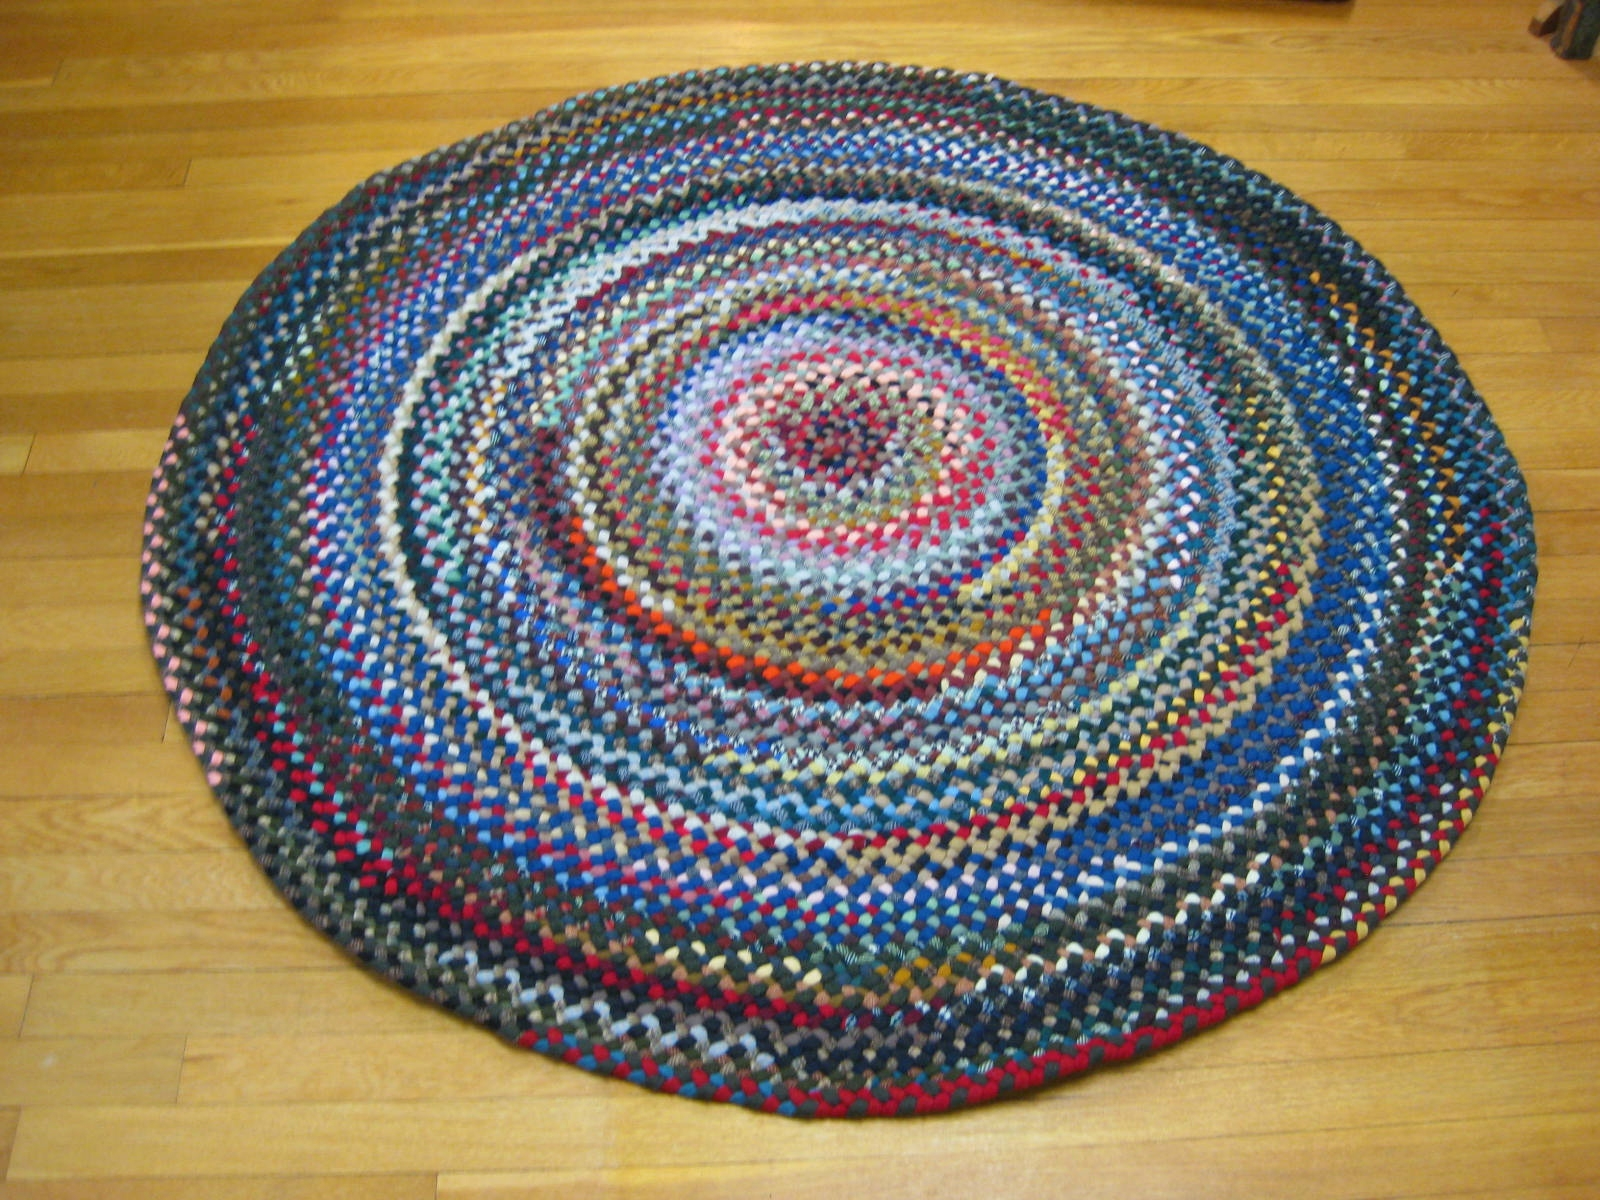 45 Wool Round Braided Rug Country Braid House Throughout Round Wool Rugs (Photo 1 of 15)